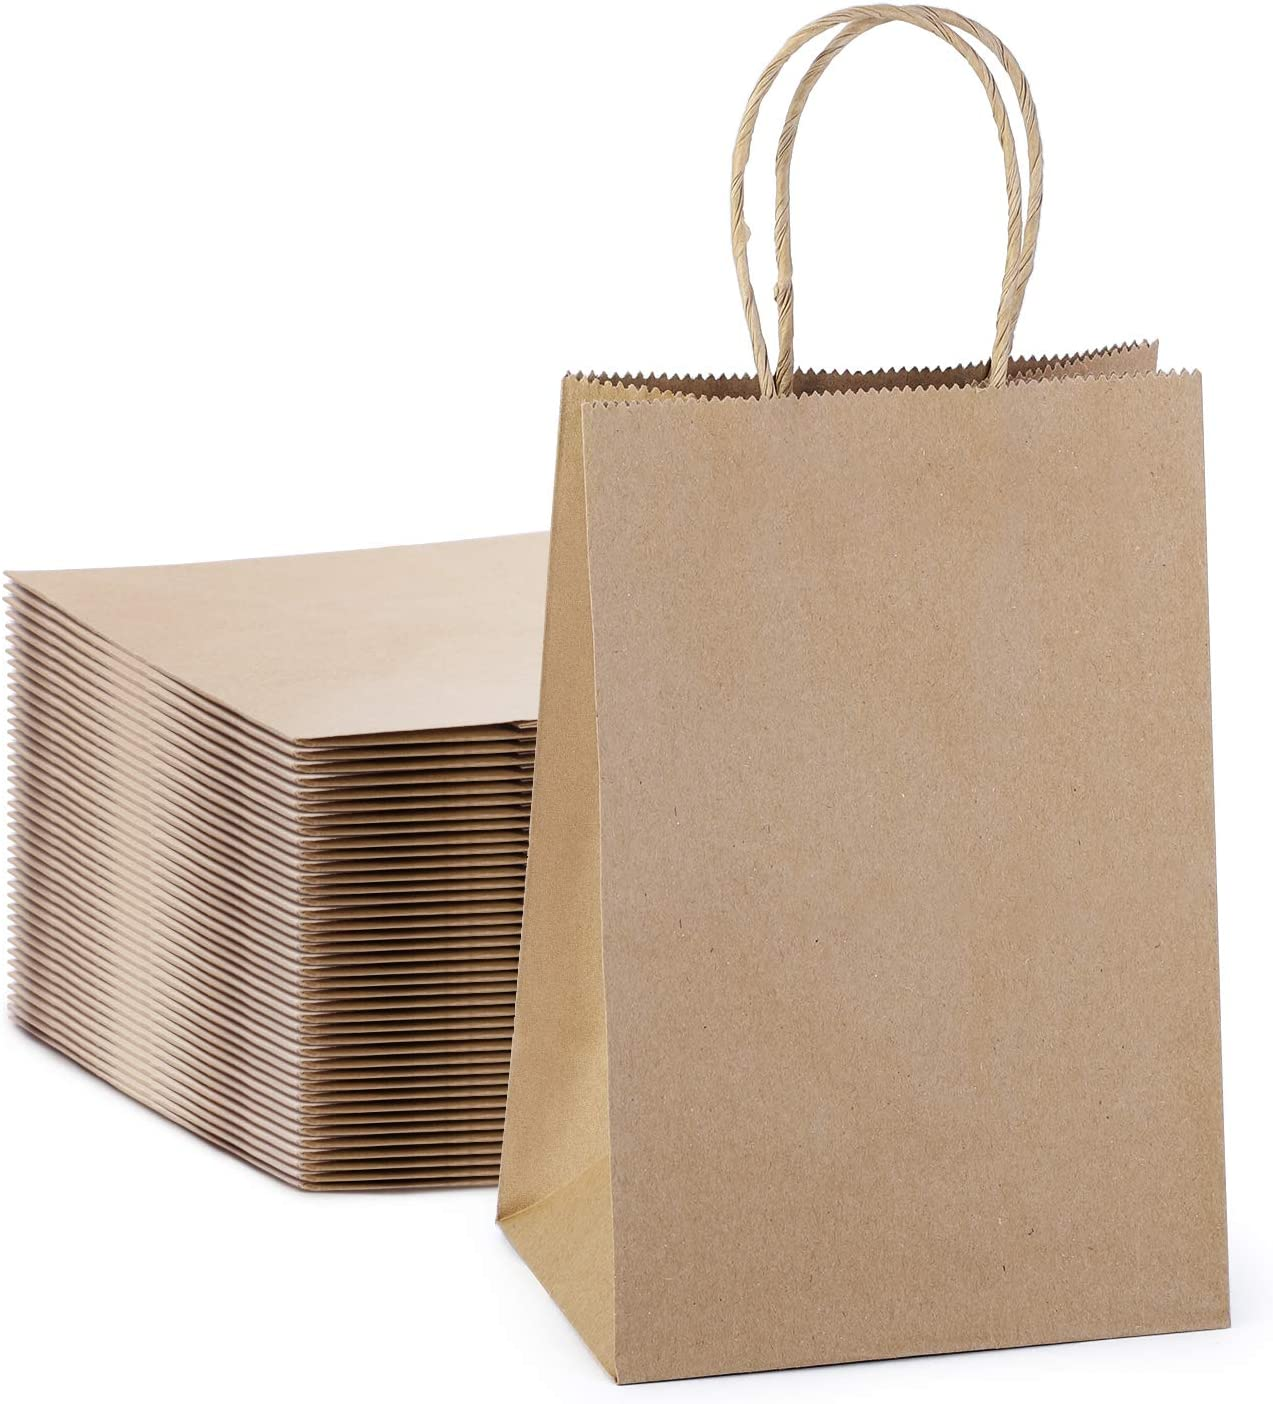 MESHA Kraft Paper Bags 50Pcs 5.25x3.75x8 Inches Small Paper Gift Bags with Handles Bulk, Gift Bags, Merchandise Bags, Party Bags, Paper Shopping Bags,Brown Bags,Craft Bags(100% Recyclable Paper)